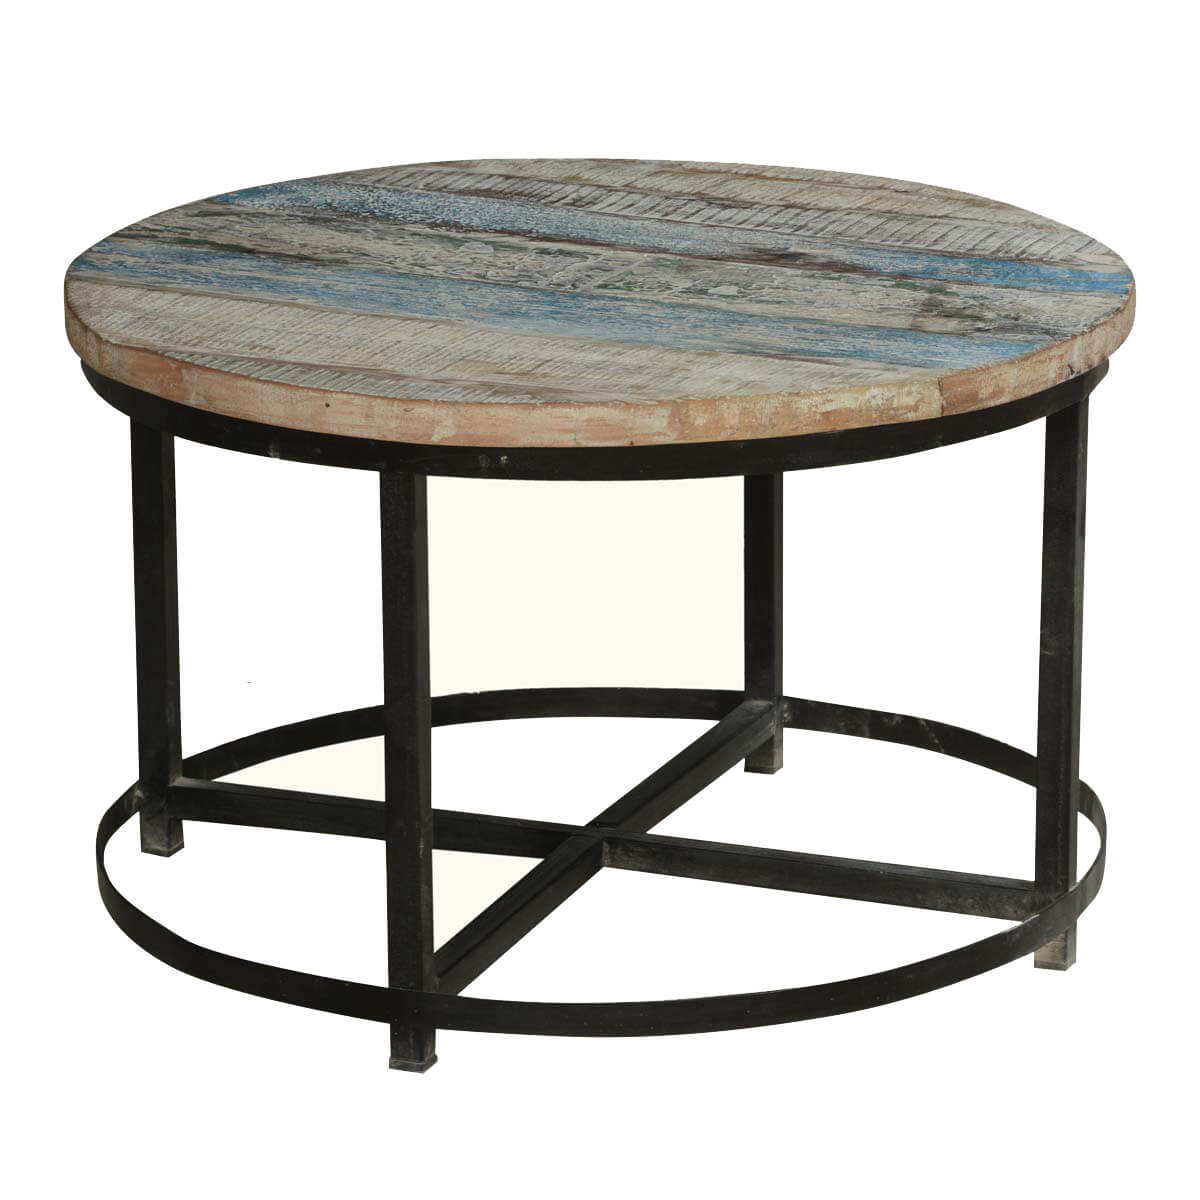 Salvaged Wood Coffee Table ~ Industrial style coffee table with reclaimed wood top